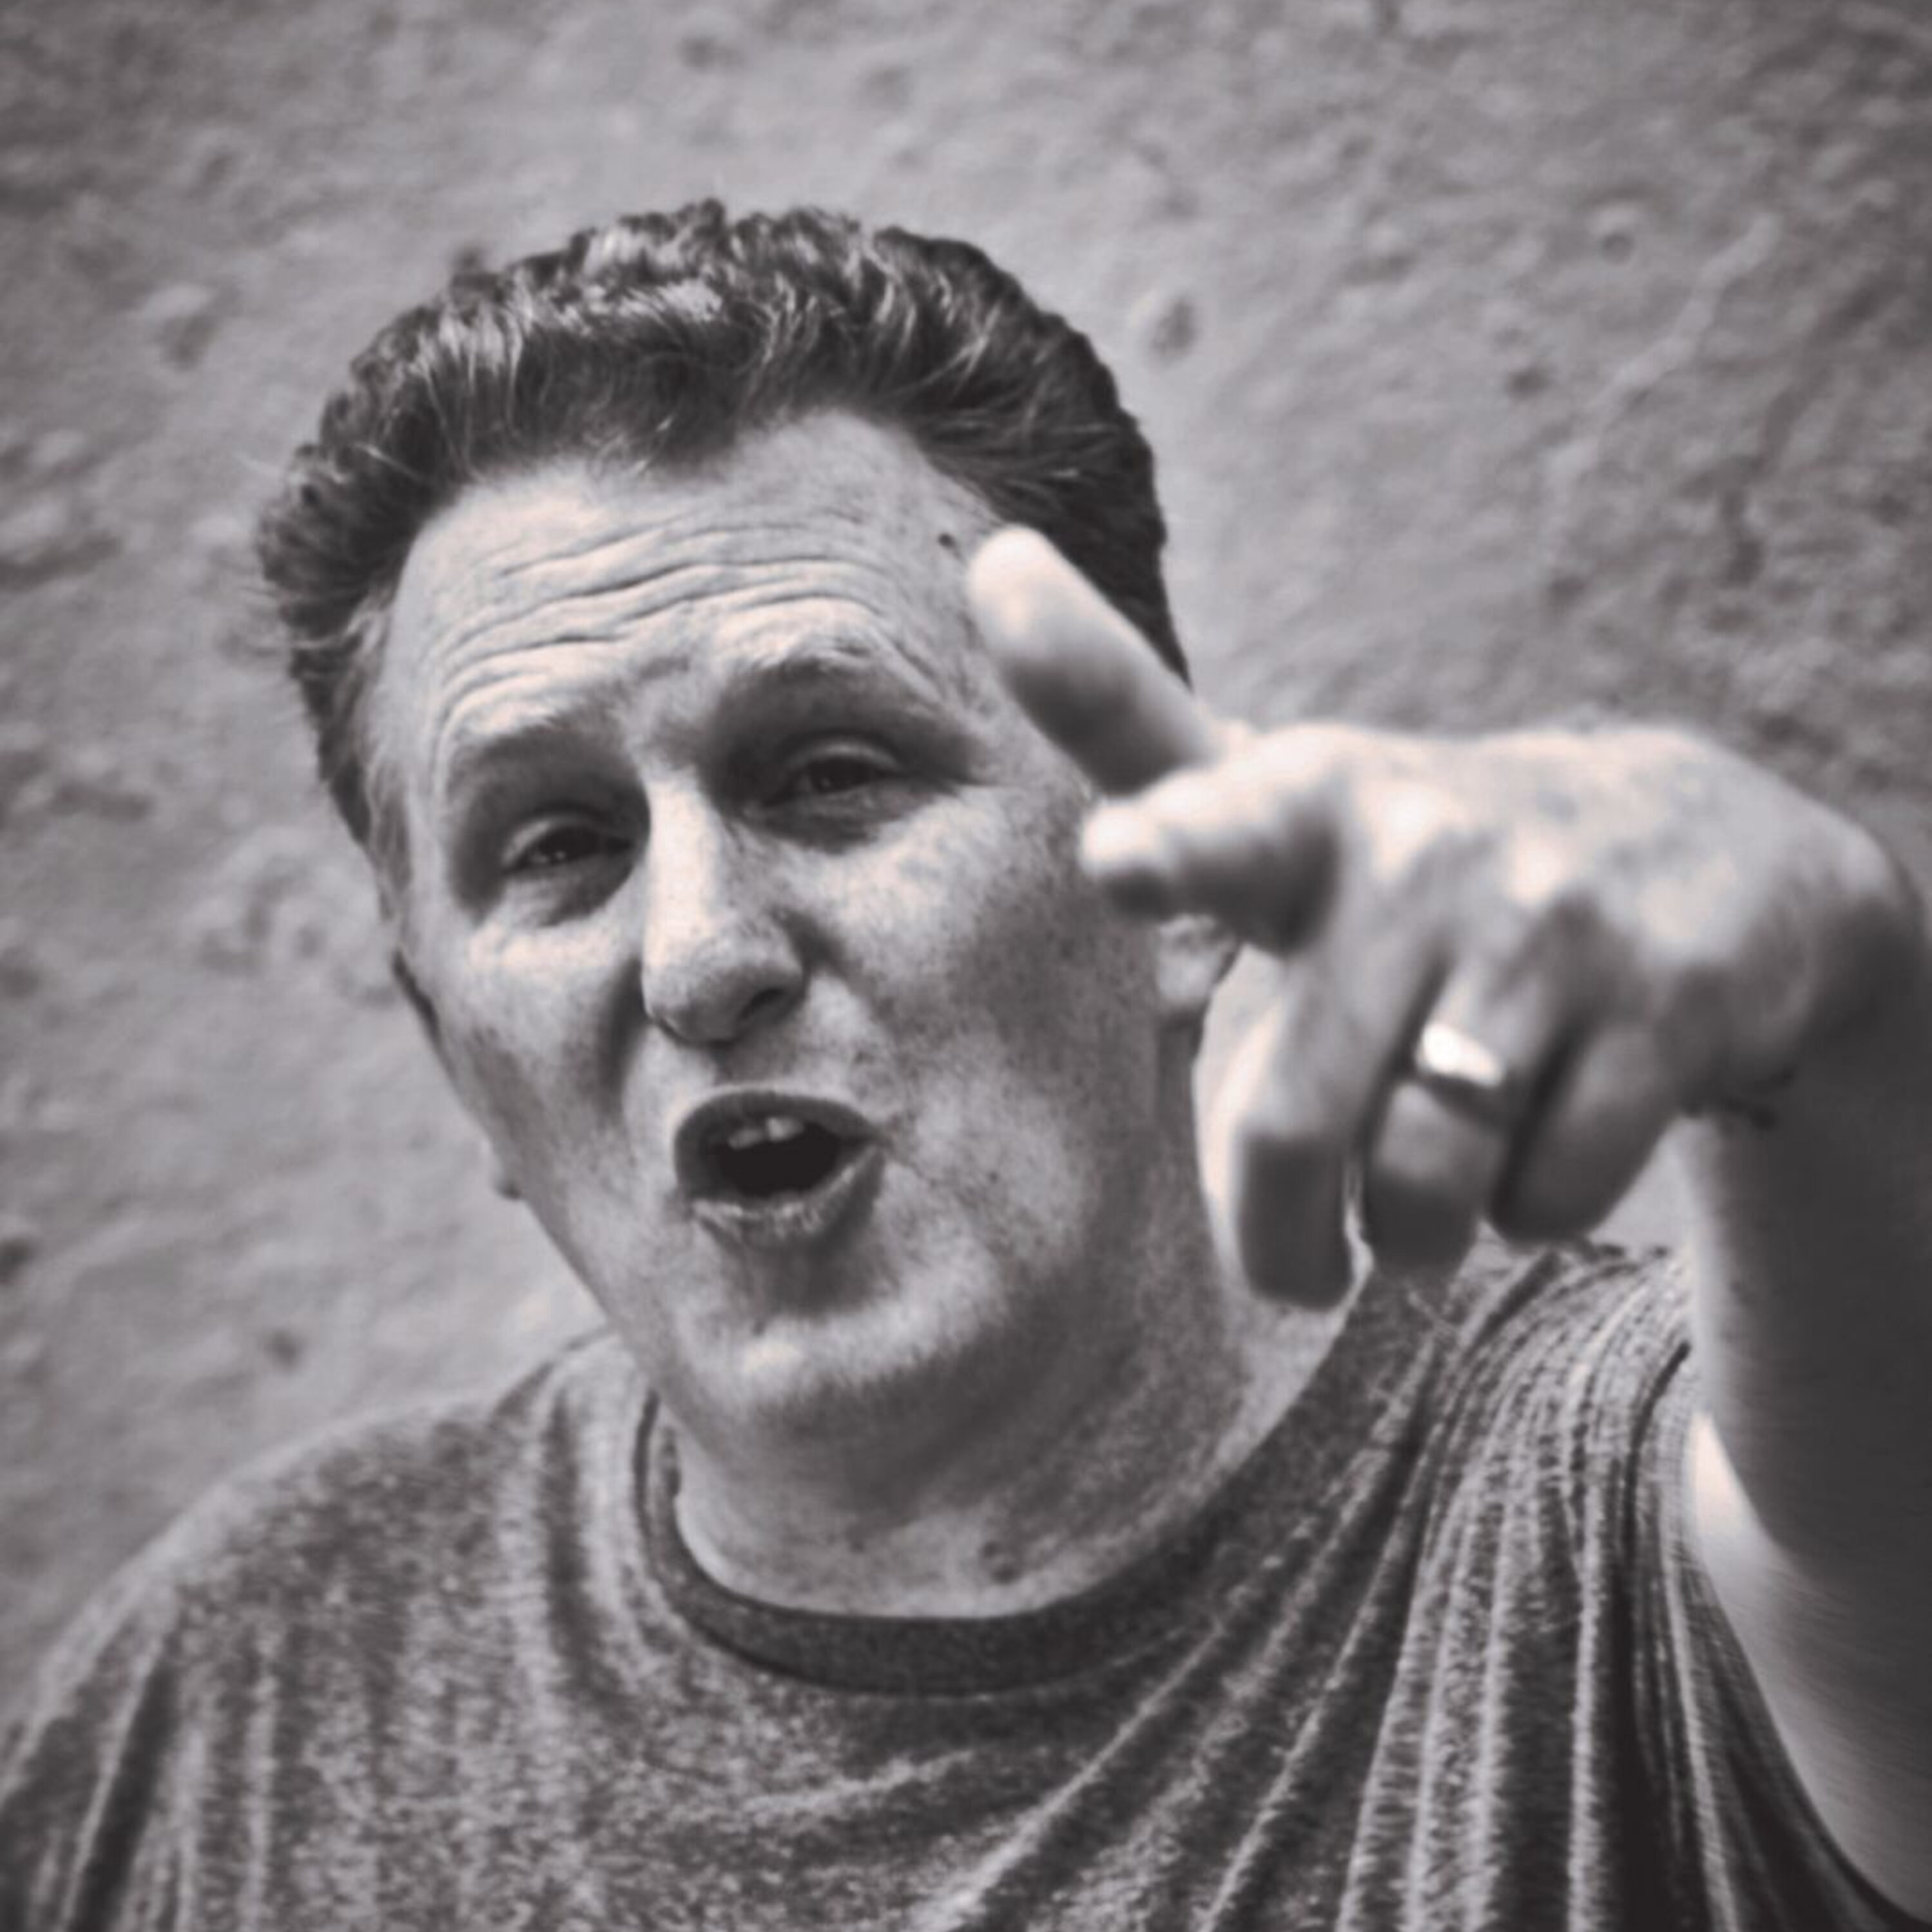 Kelly talks politics and comedy with Michael Rapaport